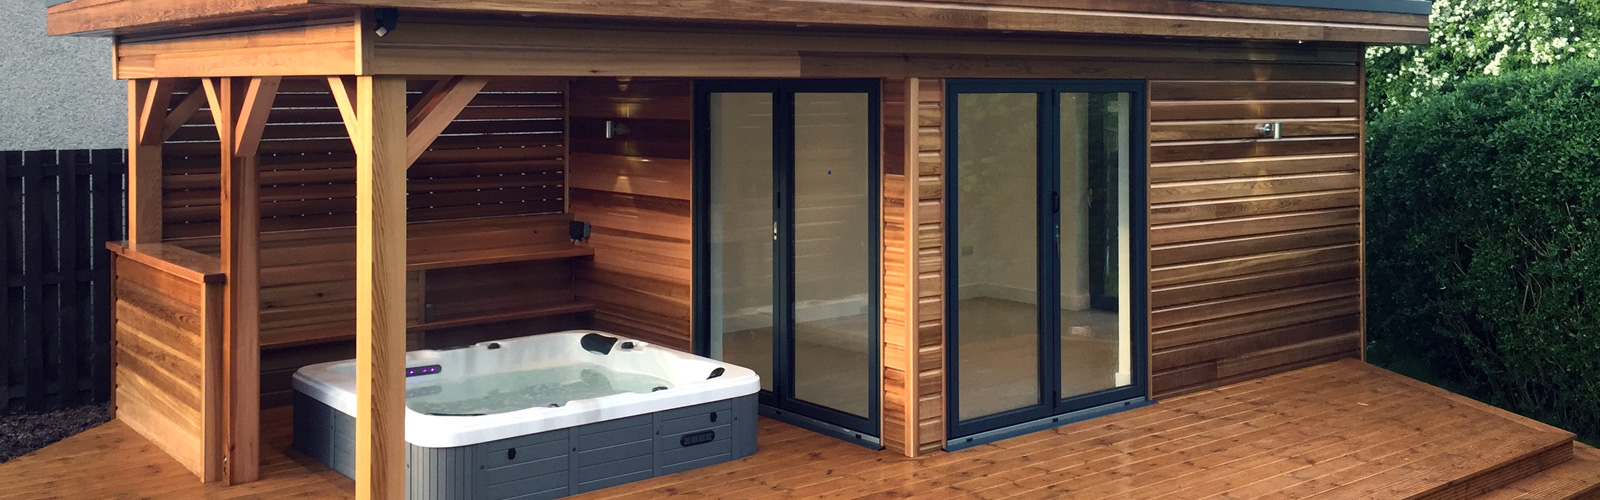 Full Timber Garden Rooms and Summer Houses with Highland Timber Construction